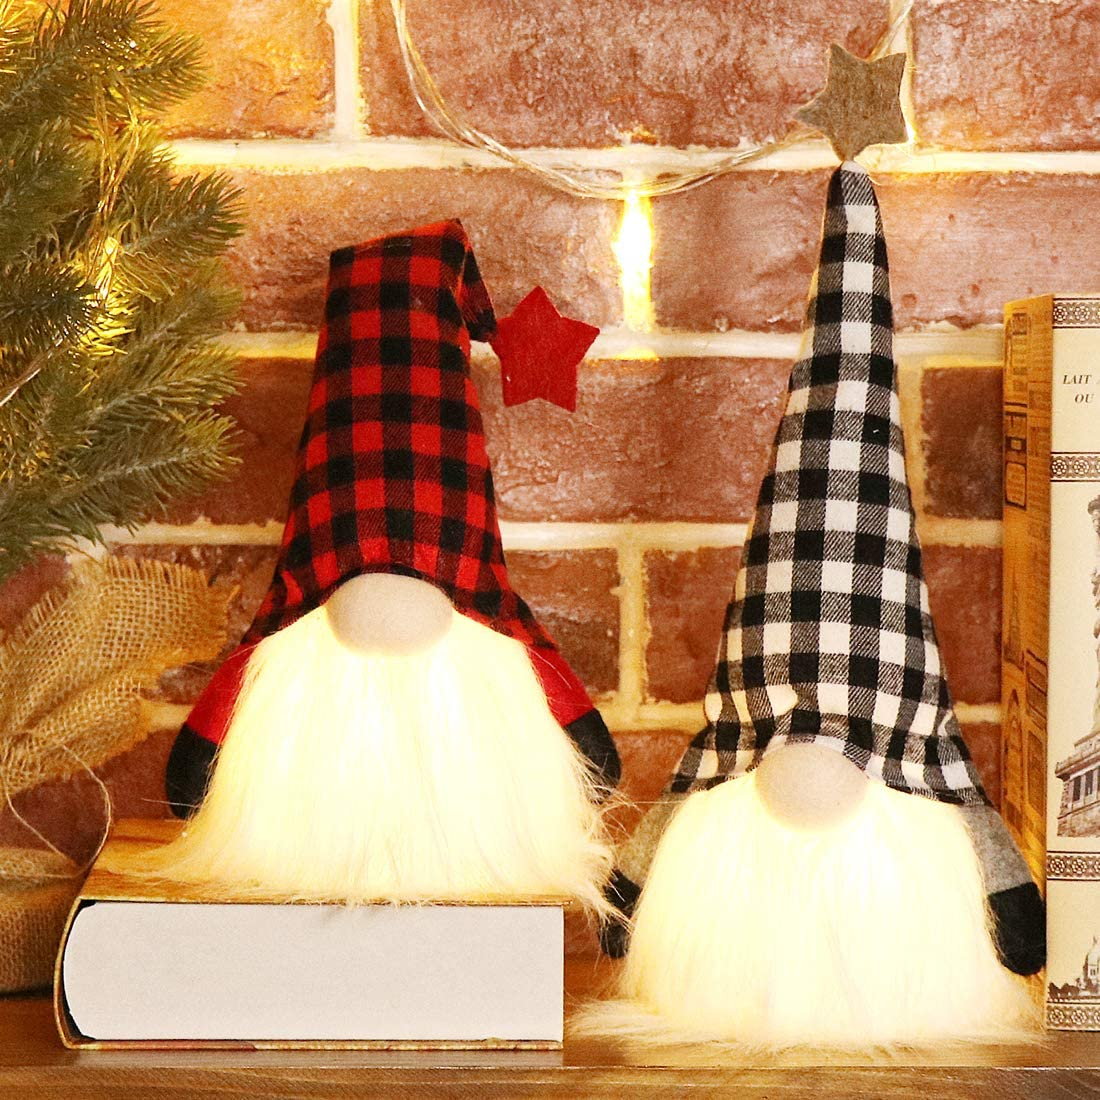 EDLDECCO Christmas Gnome with Light Timer 12 Inches Set of 2 Plaid Buffalo Check Nisse Figurine Plush Swedish Nordic Tomte Scandinavian Elf X'Mas Holiday Party Home Decor Ornaments (Red & Black)